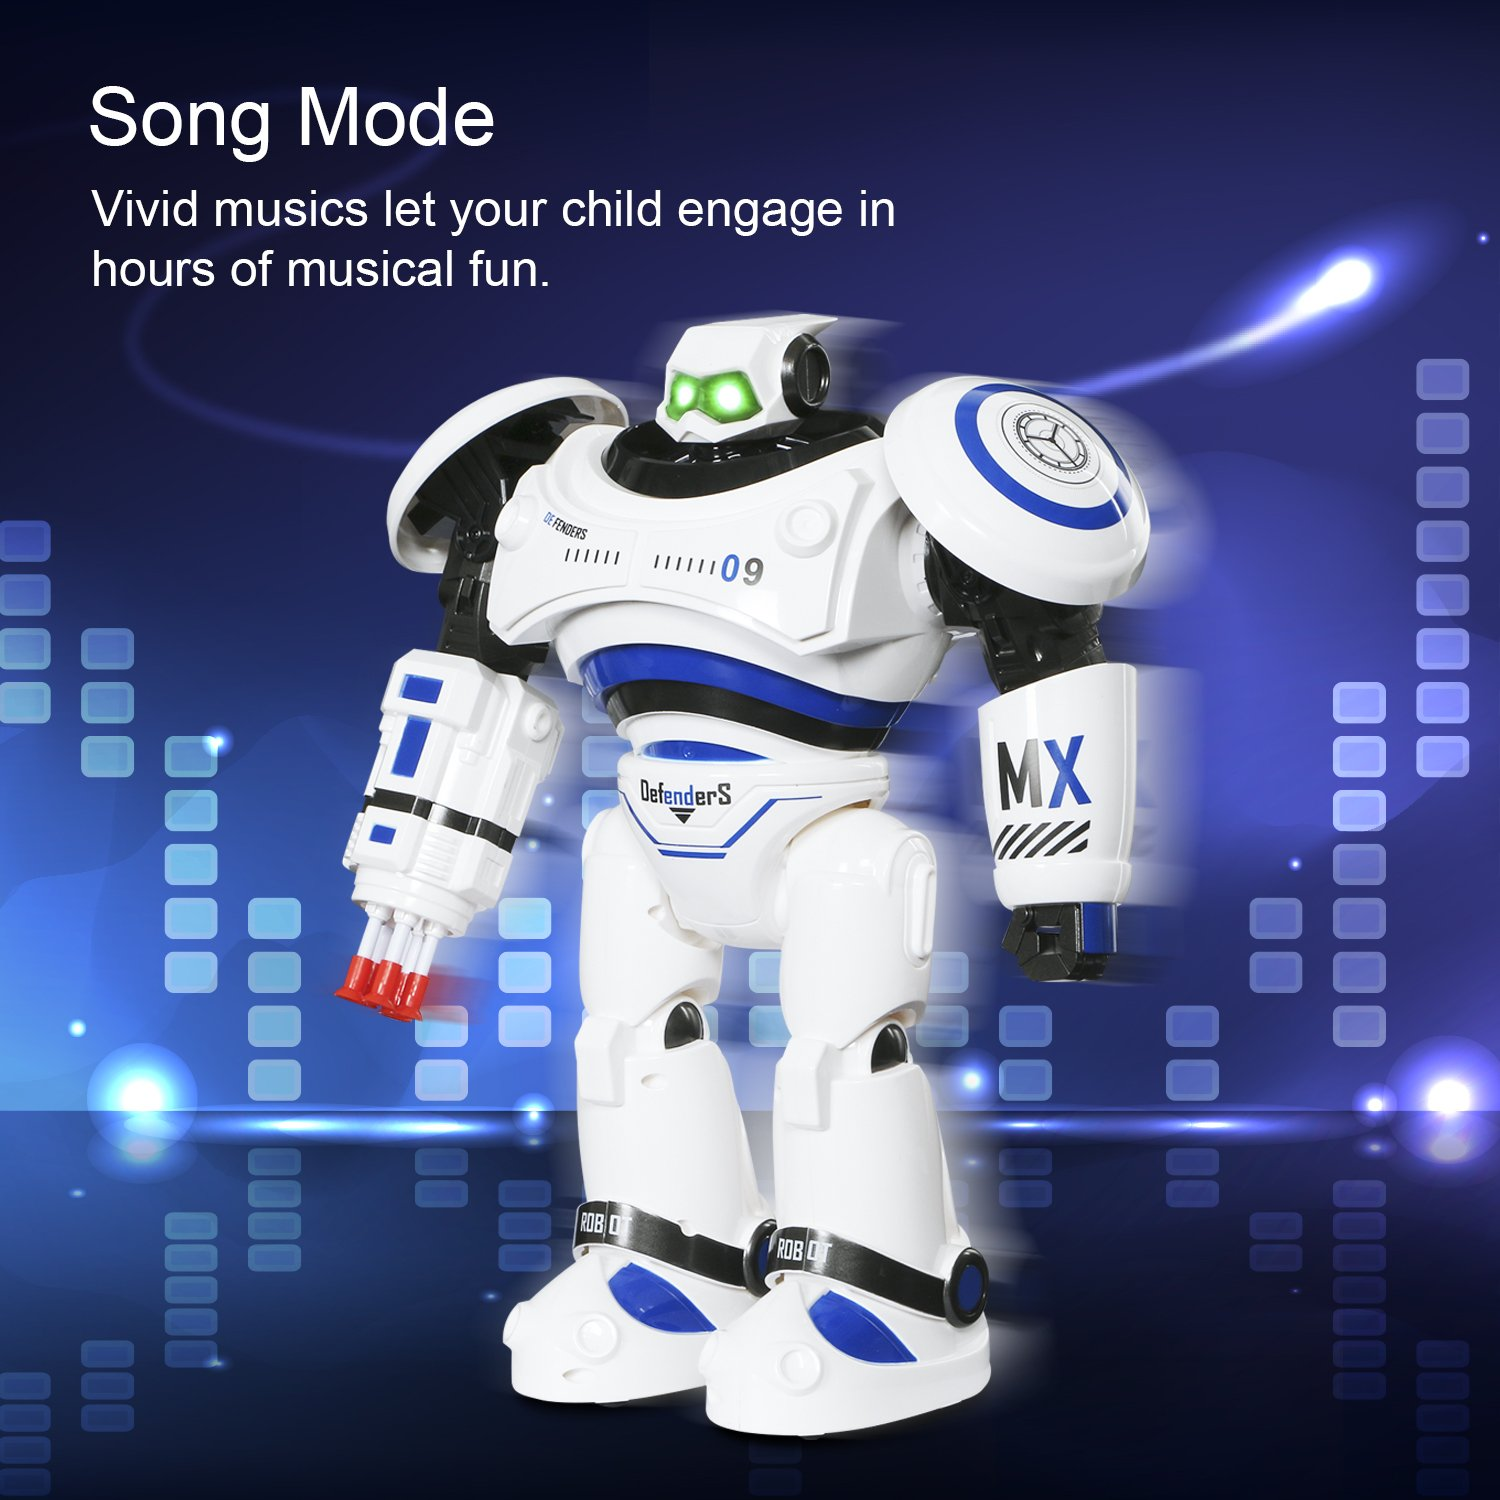 SGILE Remote Control Robot, RC Programmable Educational Robot for Kids Birthday Gift Present, Interactive Walking Singing Dancing Smart Intelligent Robotics for Kids Boy, White by SGILE (Image #5)